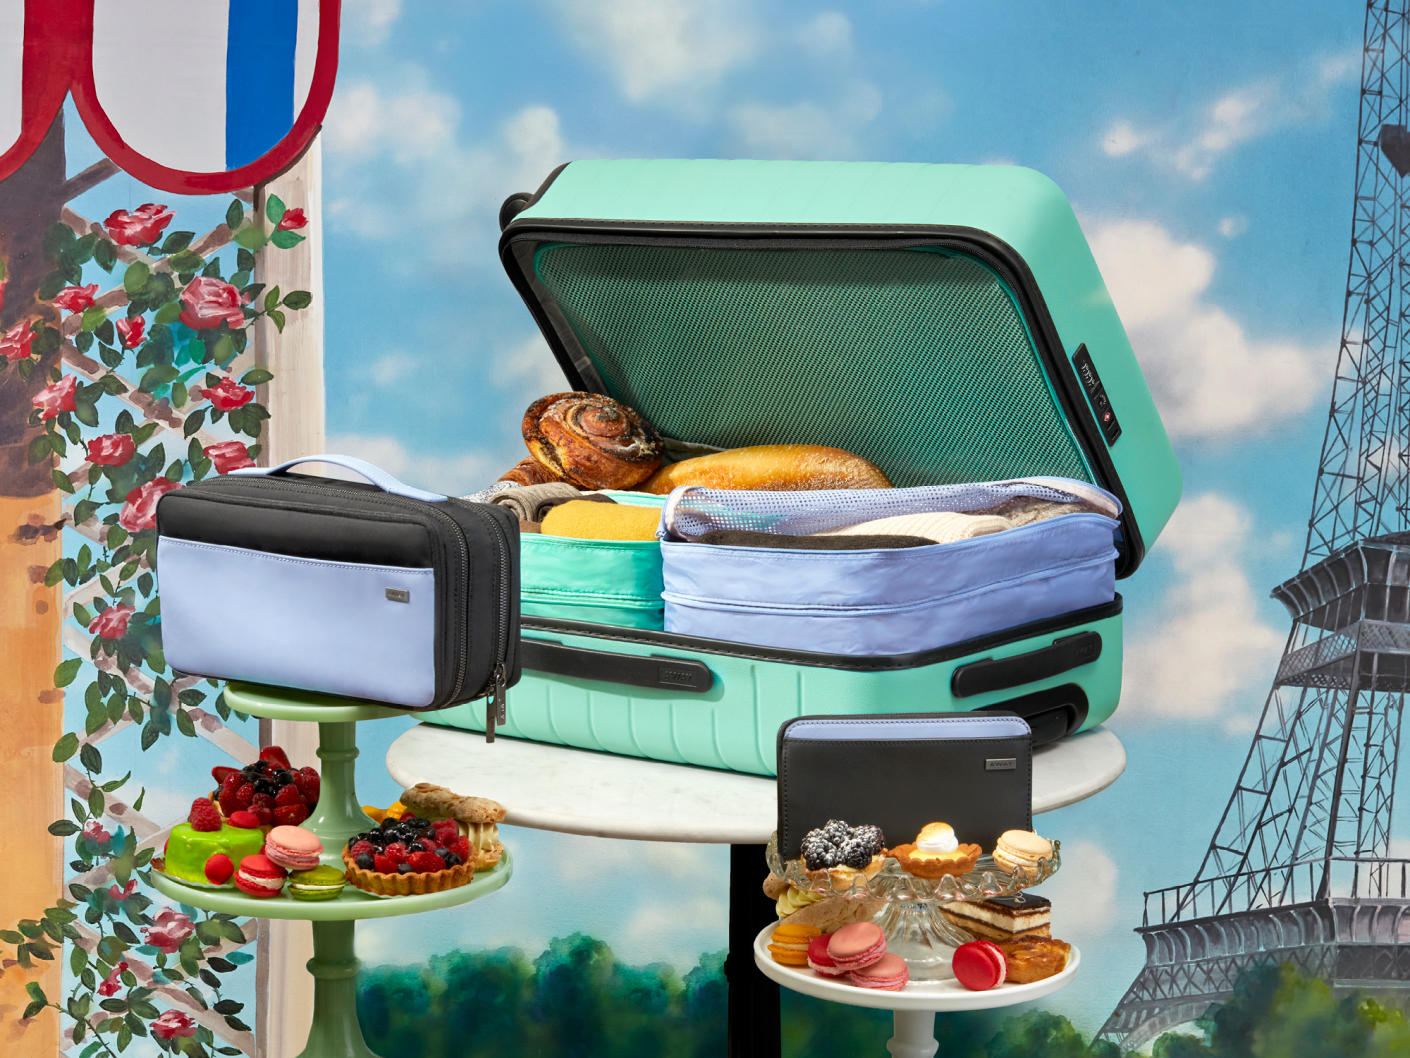 A sea green suitcase packed with picnic food, Away travel organizers displayed on platters with dessert with the Eiffel tower in the background.